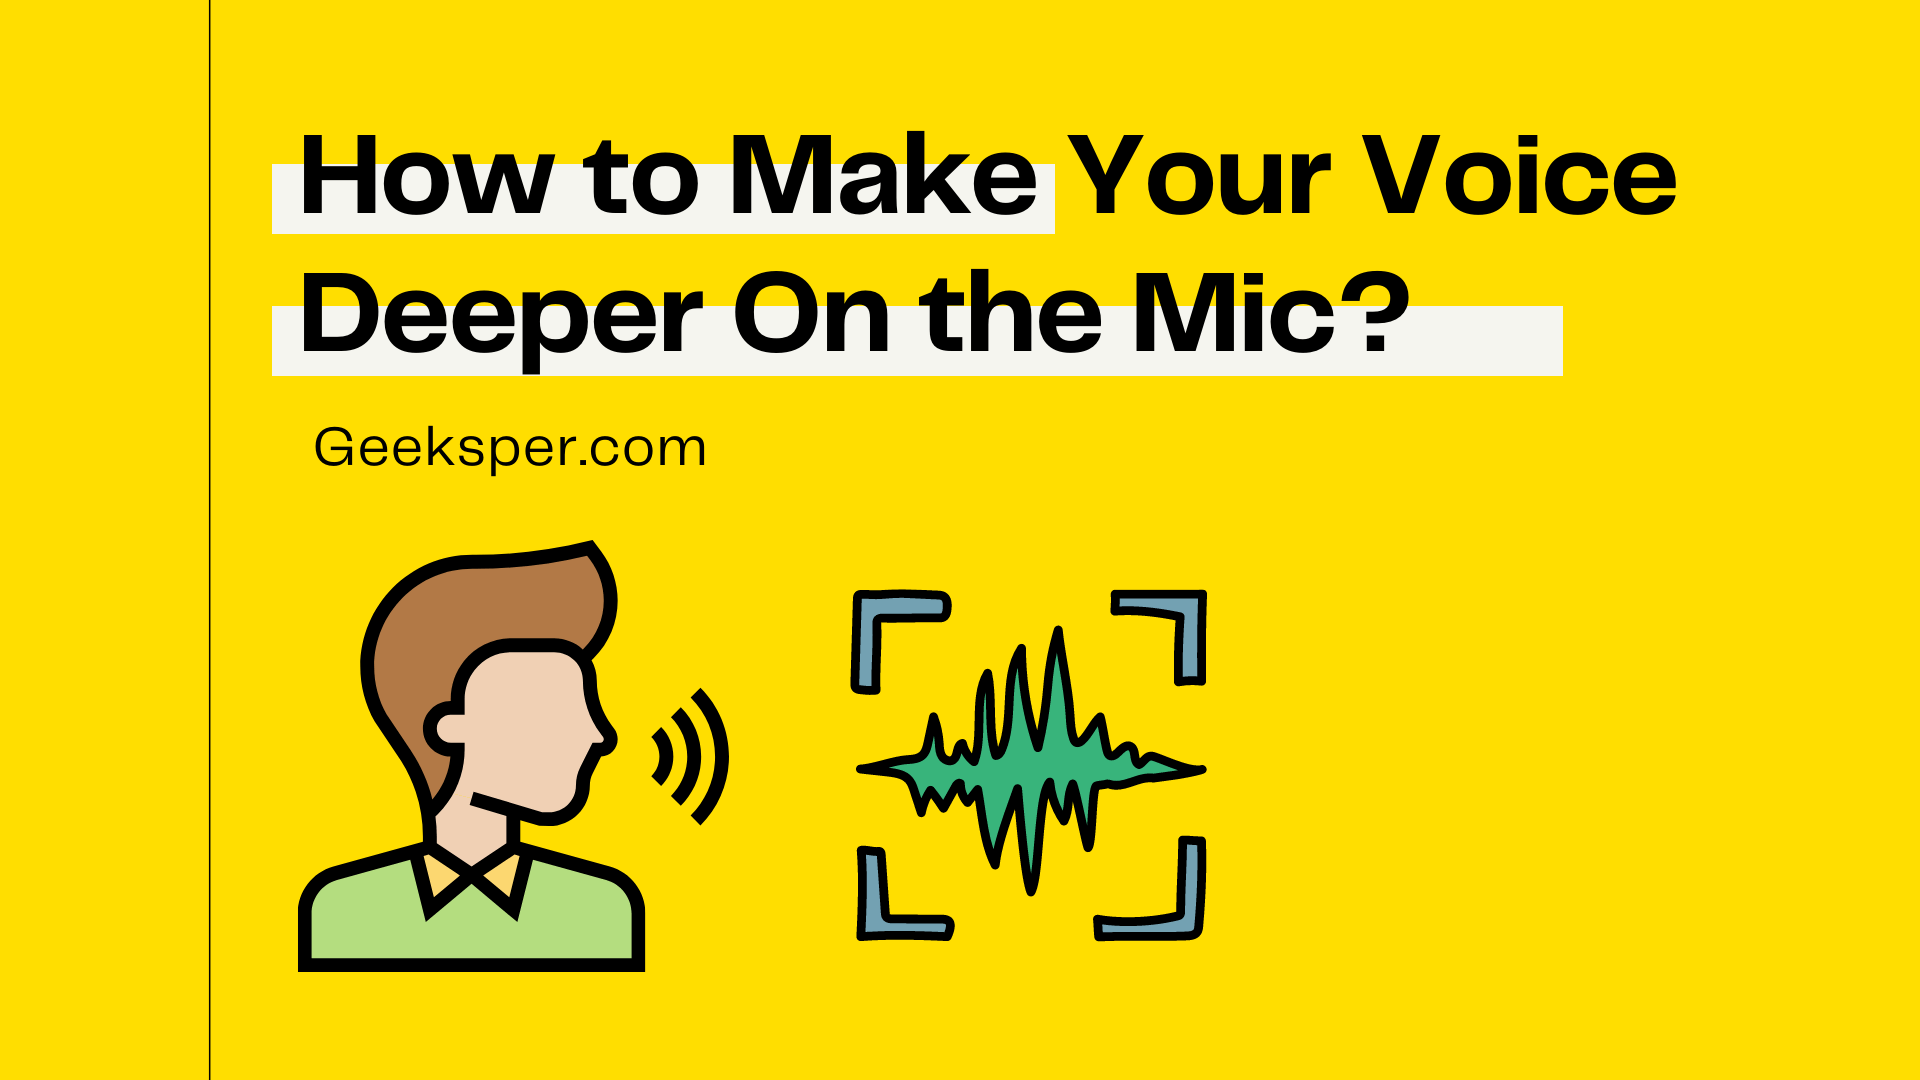 How to Make Your Voice Deeper On the Mic?